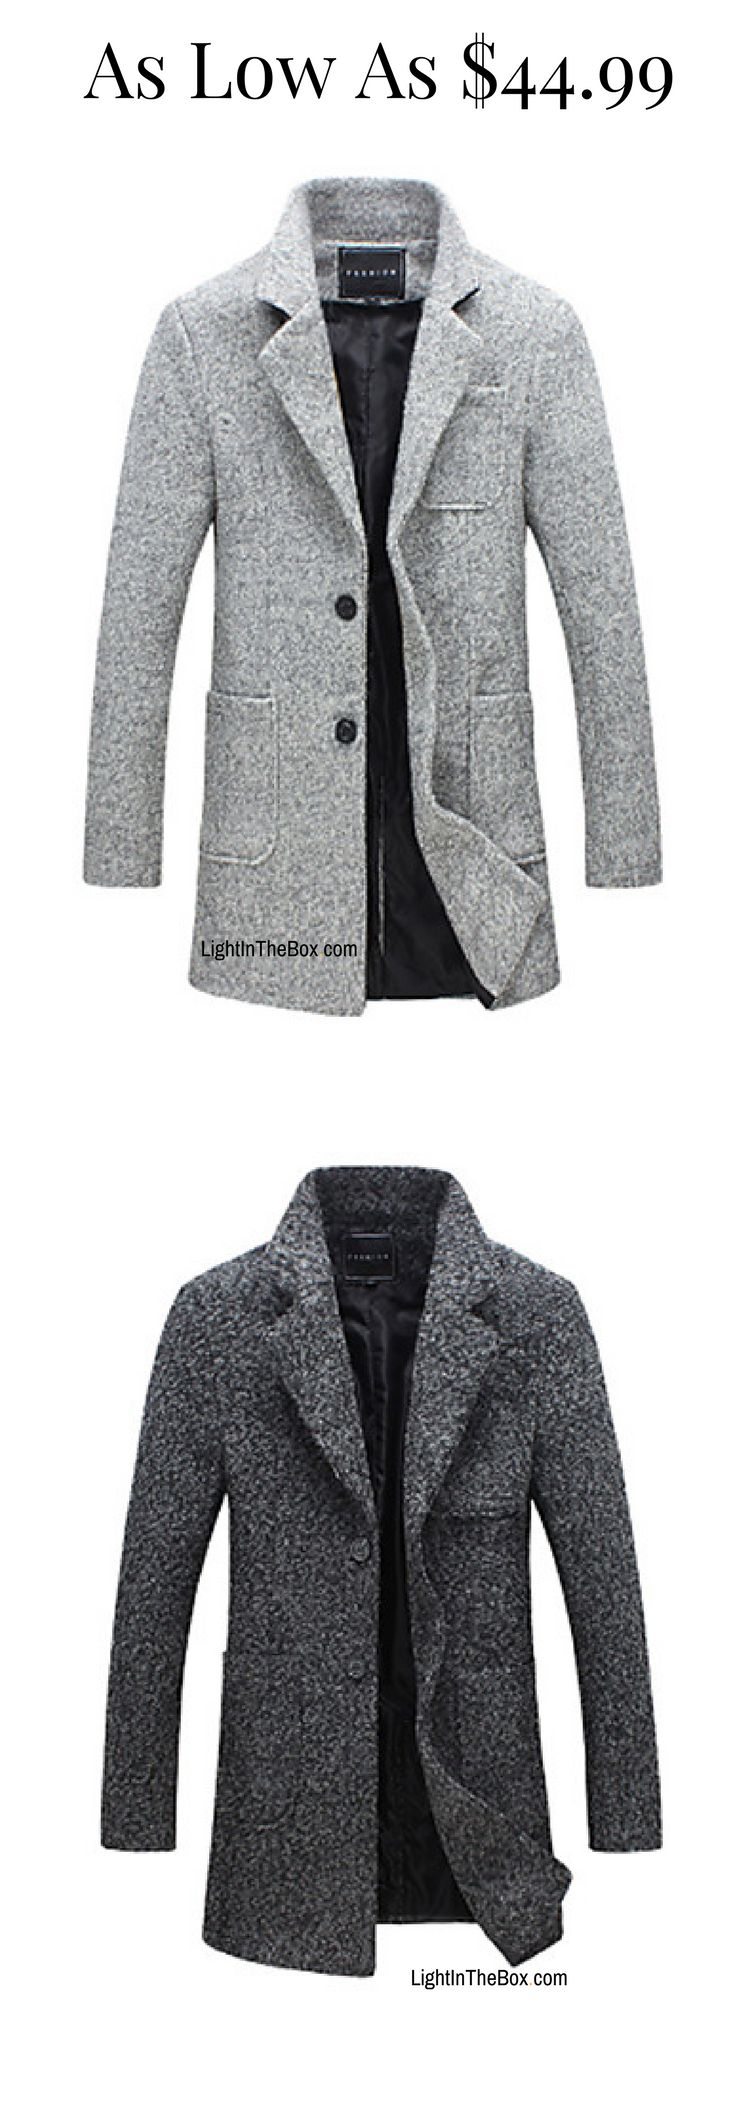 Casual formal men coat in light/ dark grey colours at just $44.99. Like it? Click to shop.